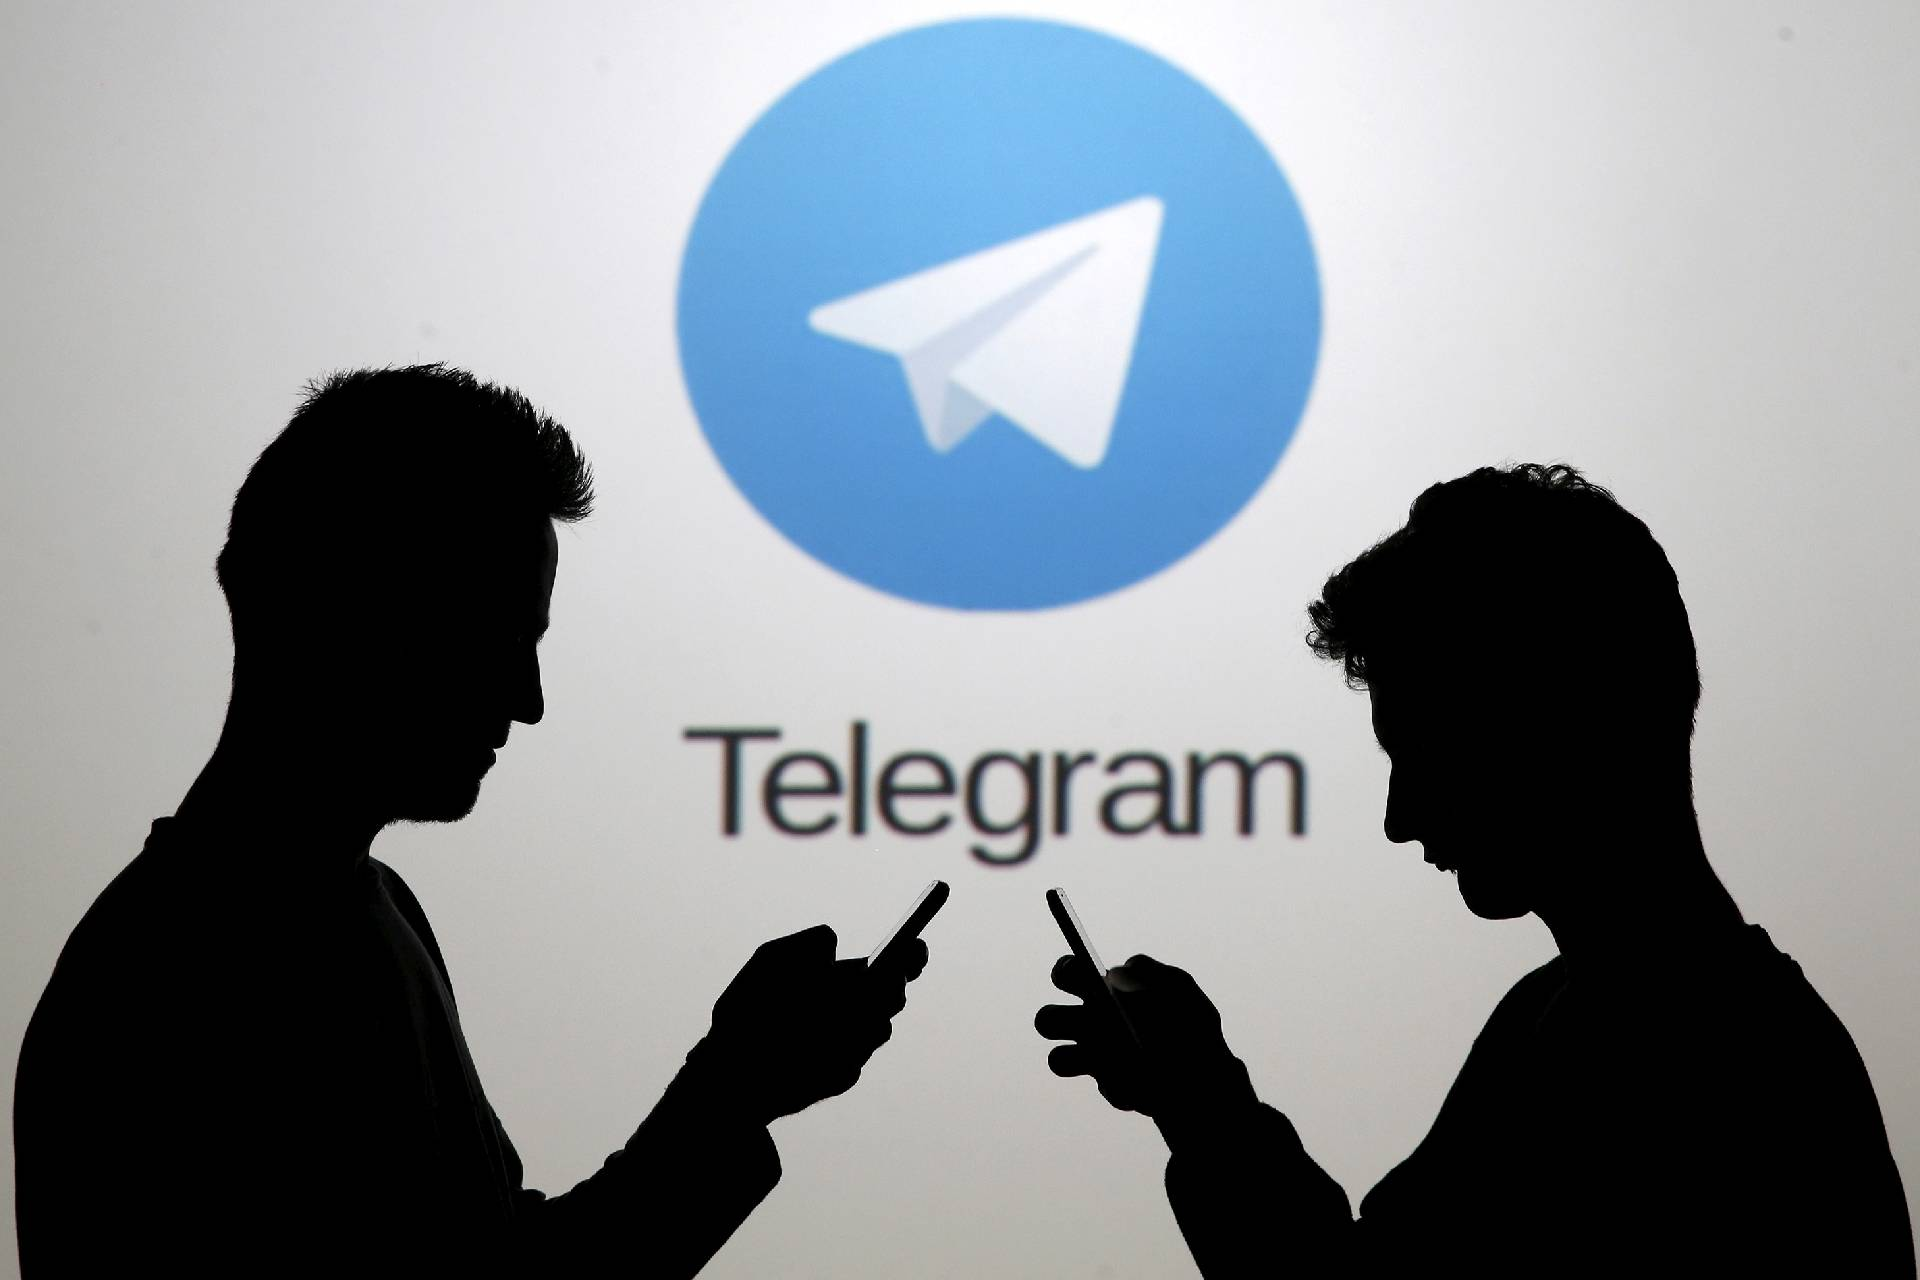 BNY Mellon and Credit Suisse Involved in Telegram's $1.7B Sale: Report